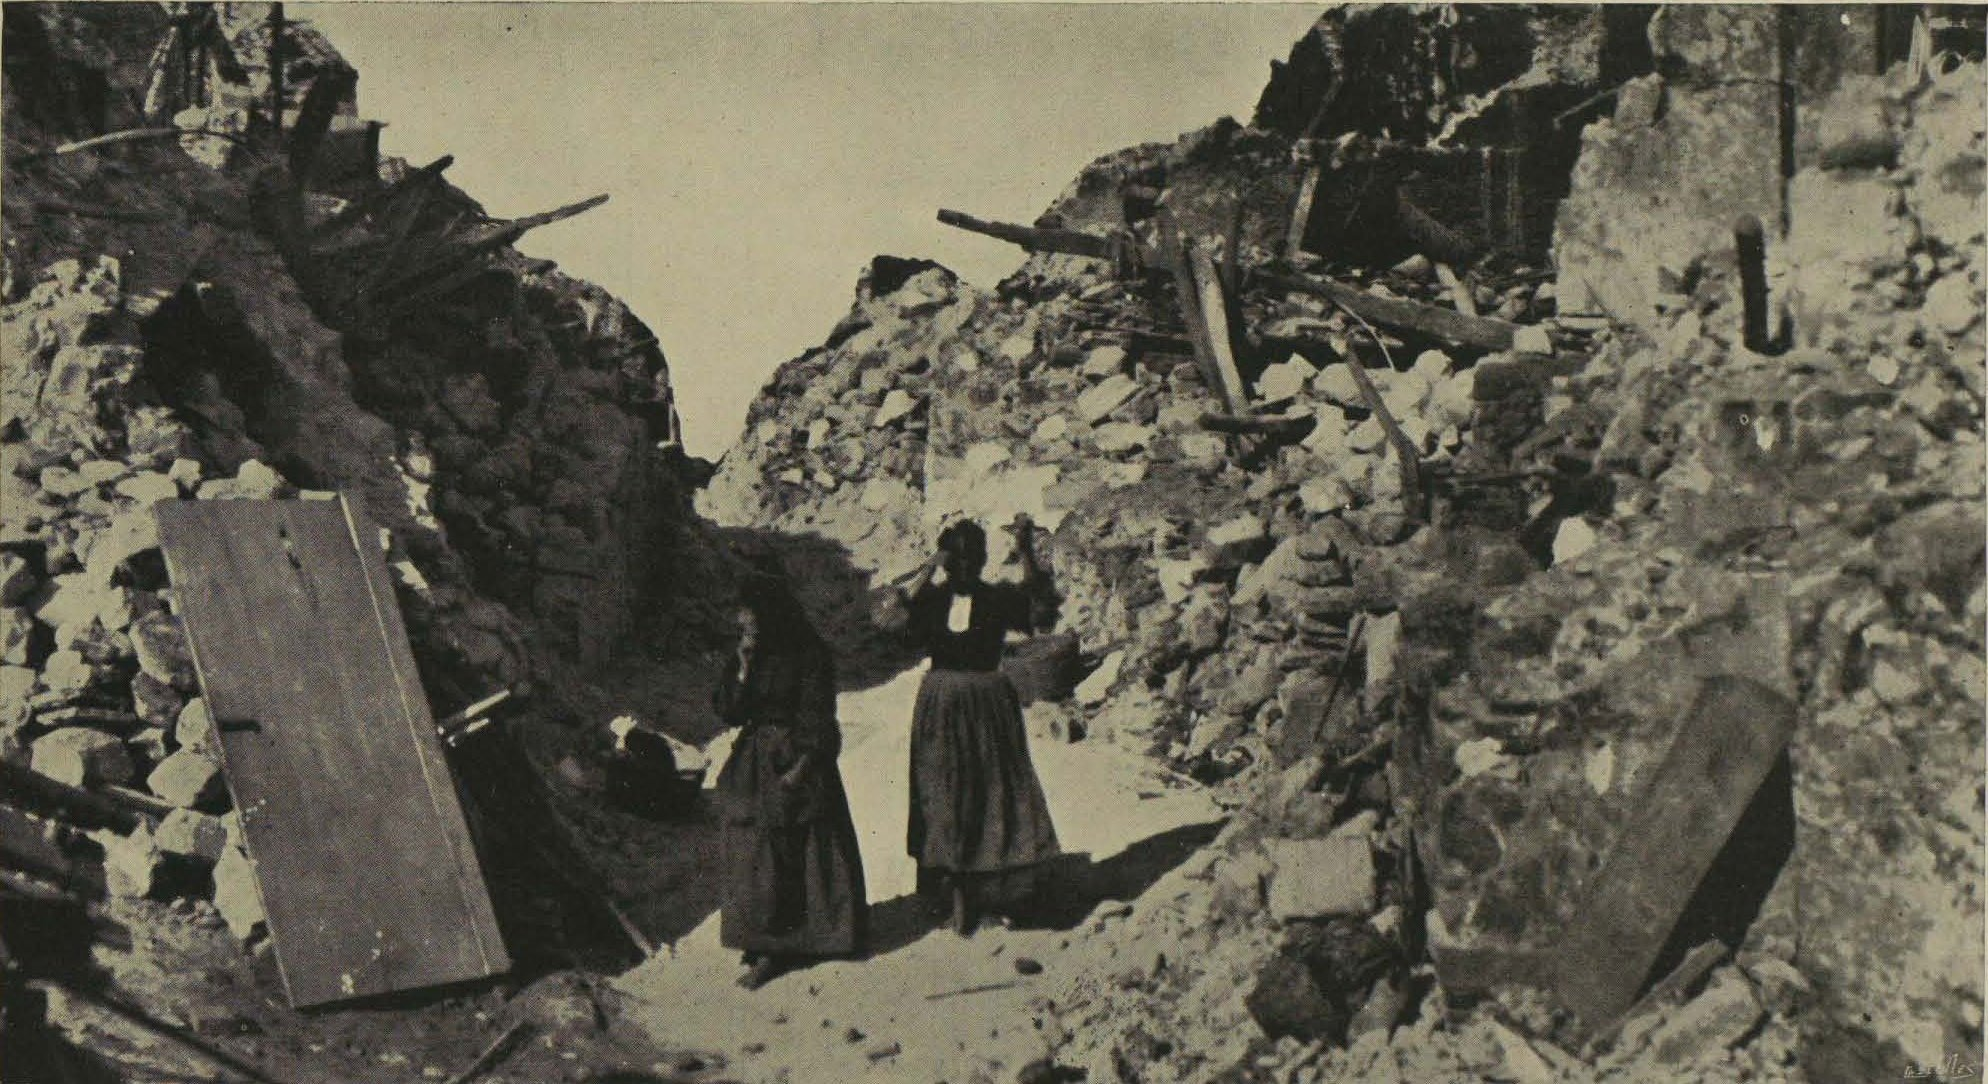 Homeless women standing in the ruins of where their houses once stood.